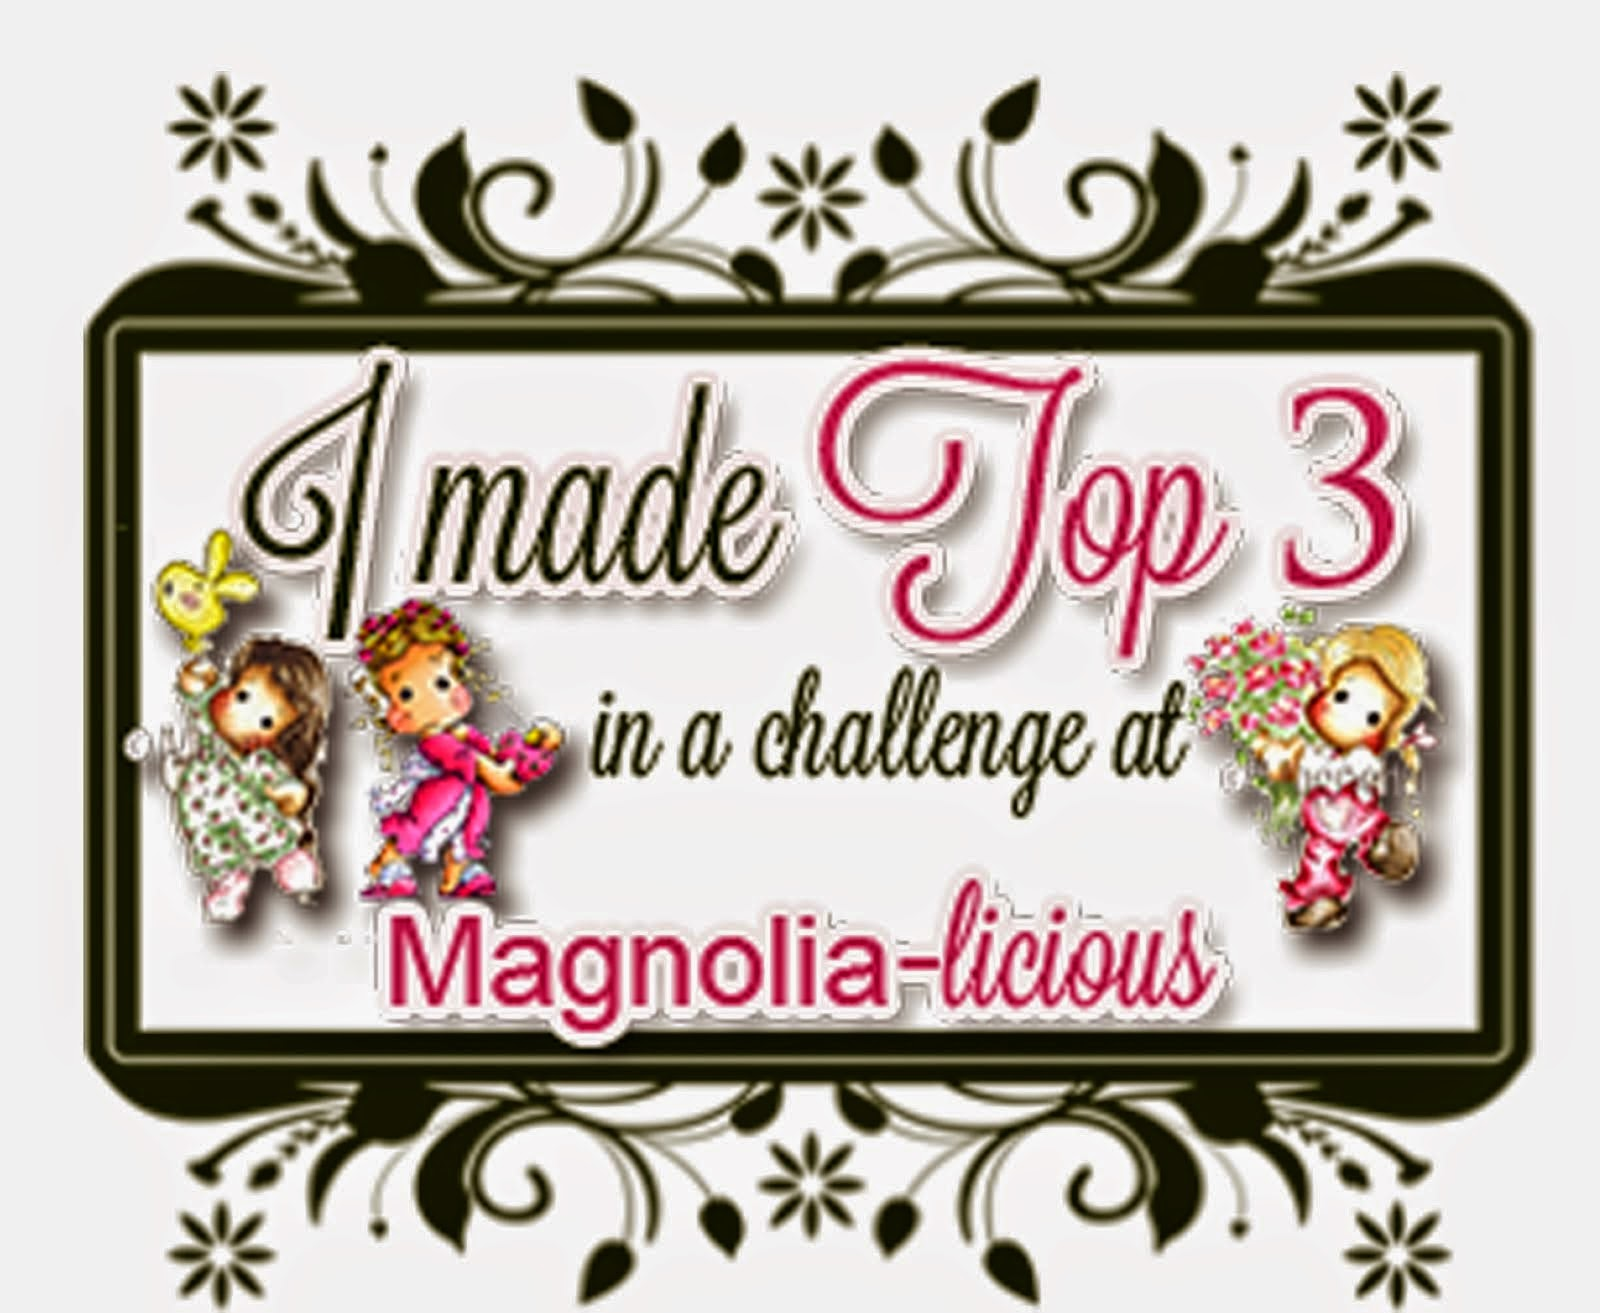 TOP 3 at Magnolia-licious - Ch# Spring Into April